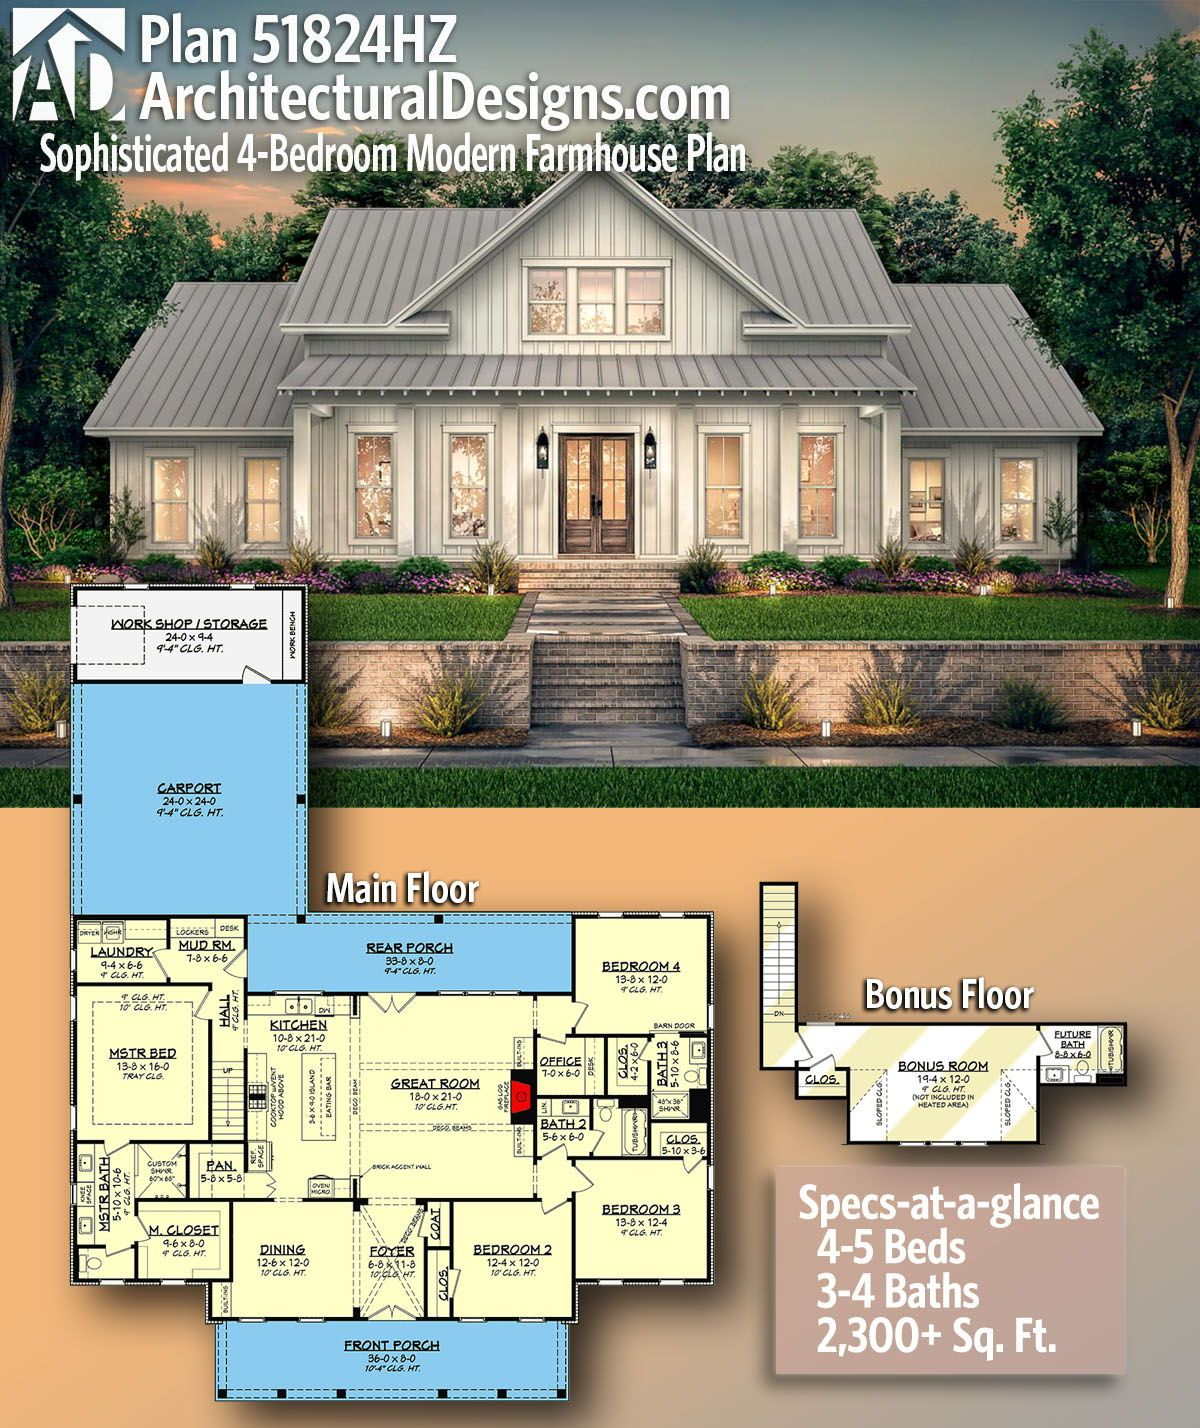 Plan 51824hz Sophisticated 4 Bedroom Modern Farmhouse Plan In 2020 Modern Farmhouse Plans Farmhouse Plans Family House Plans